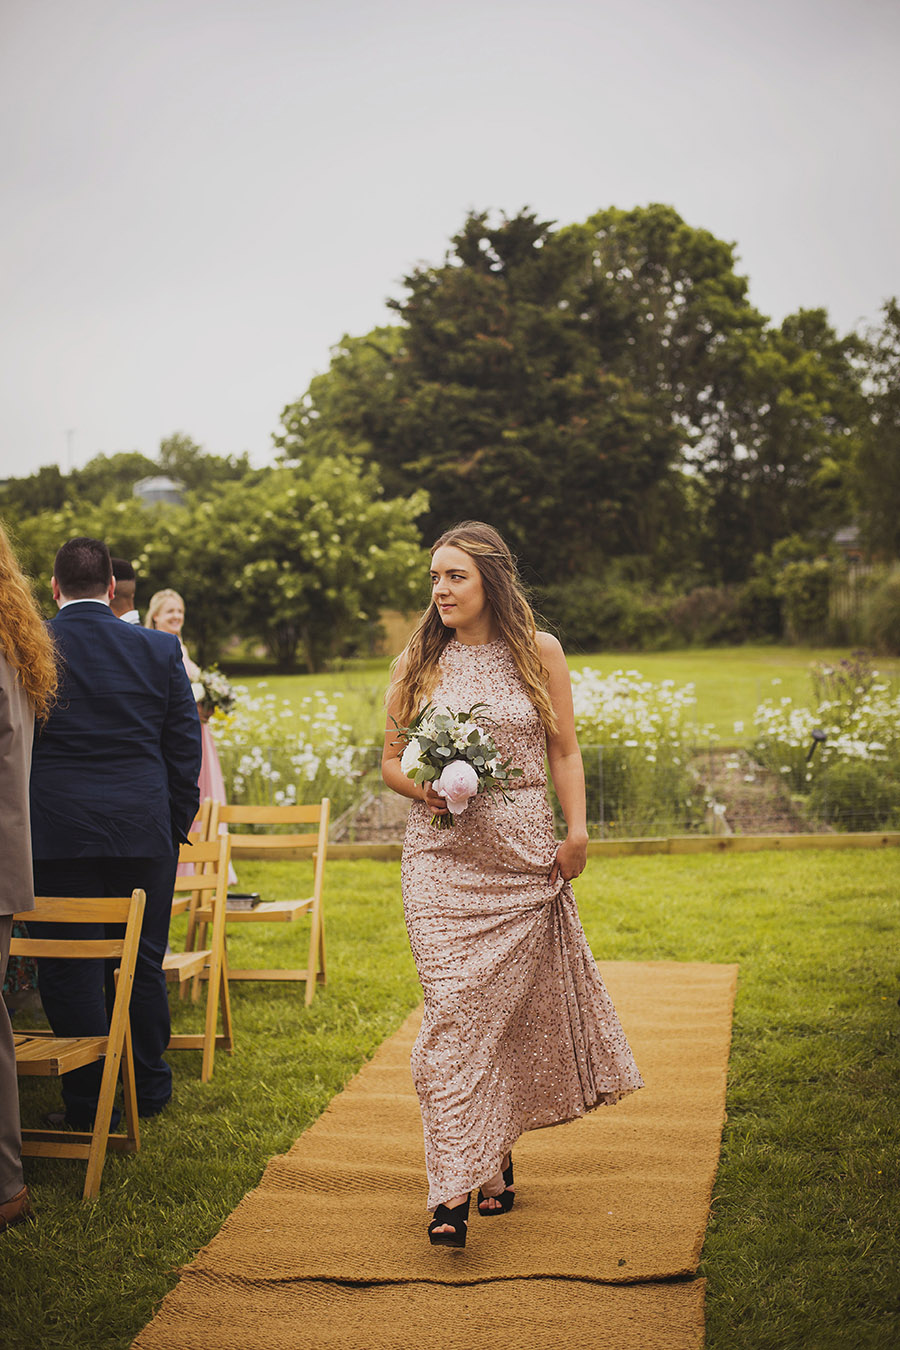 Relaxed outdoor wedding at Cott Farm Barn with images by Heather Birnie Photography on the English Wedding Blog (13)